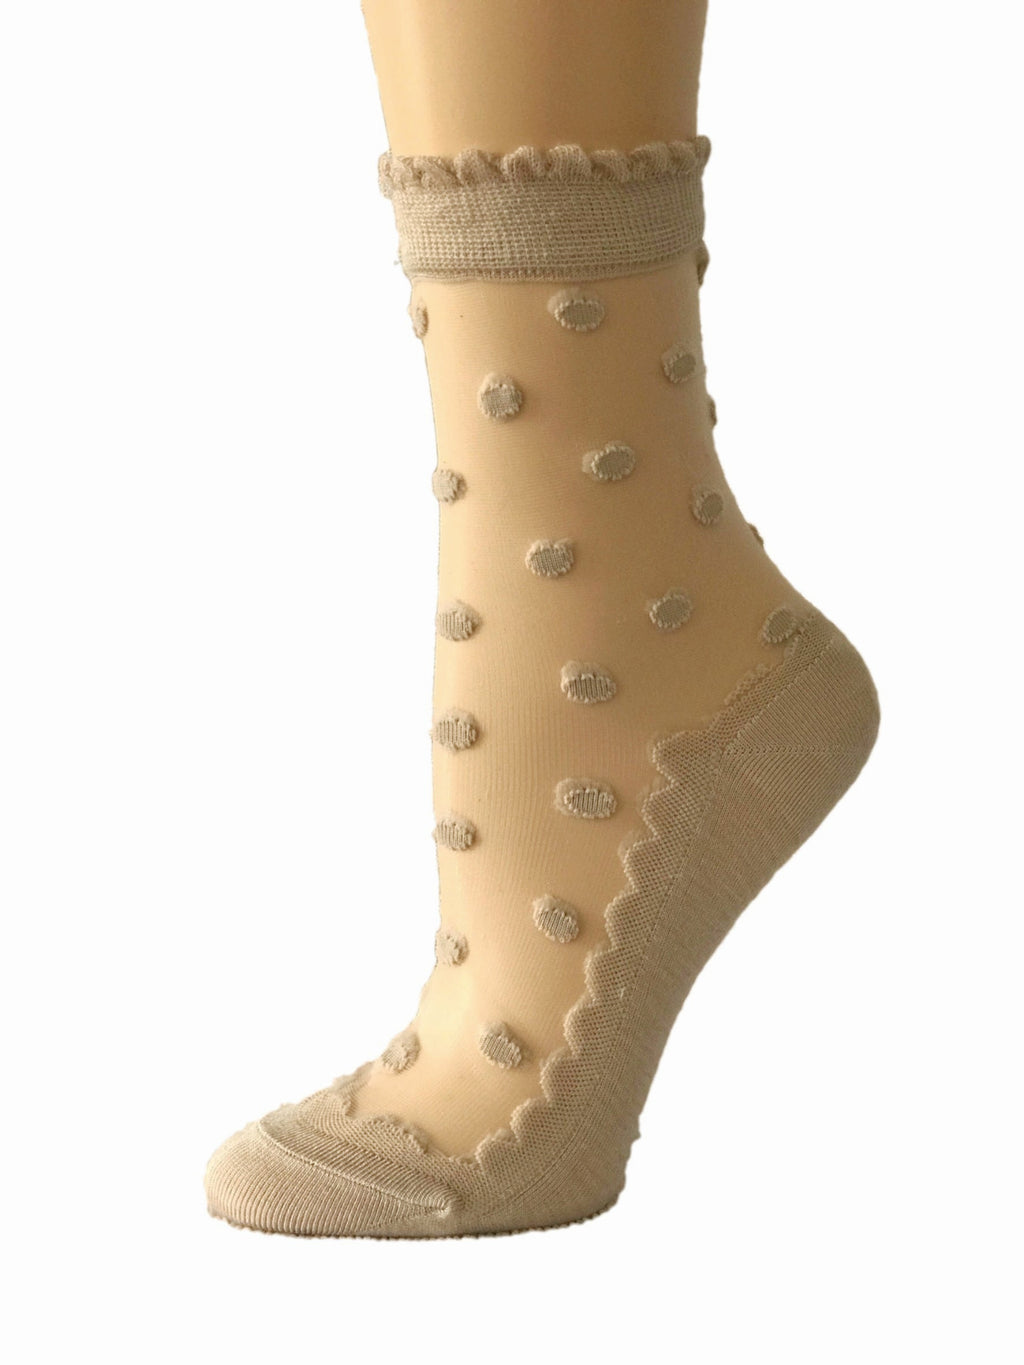 Sleek Dotted Beige Sheer Socks - Global Trendz Fashion®